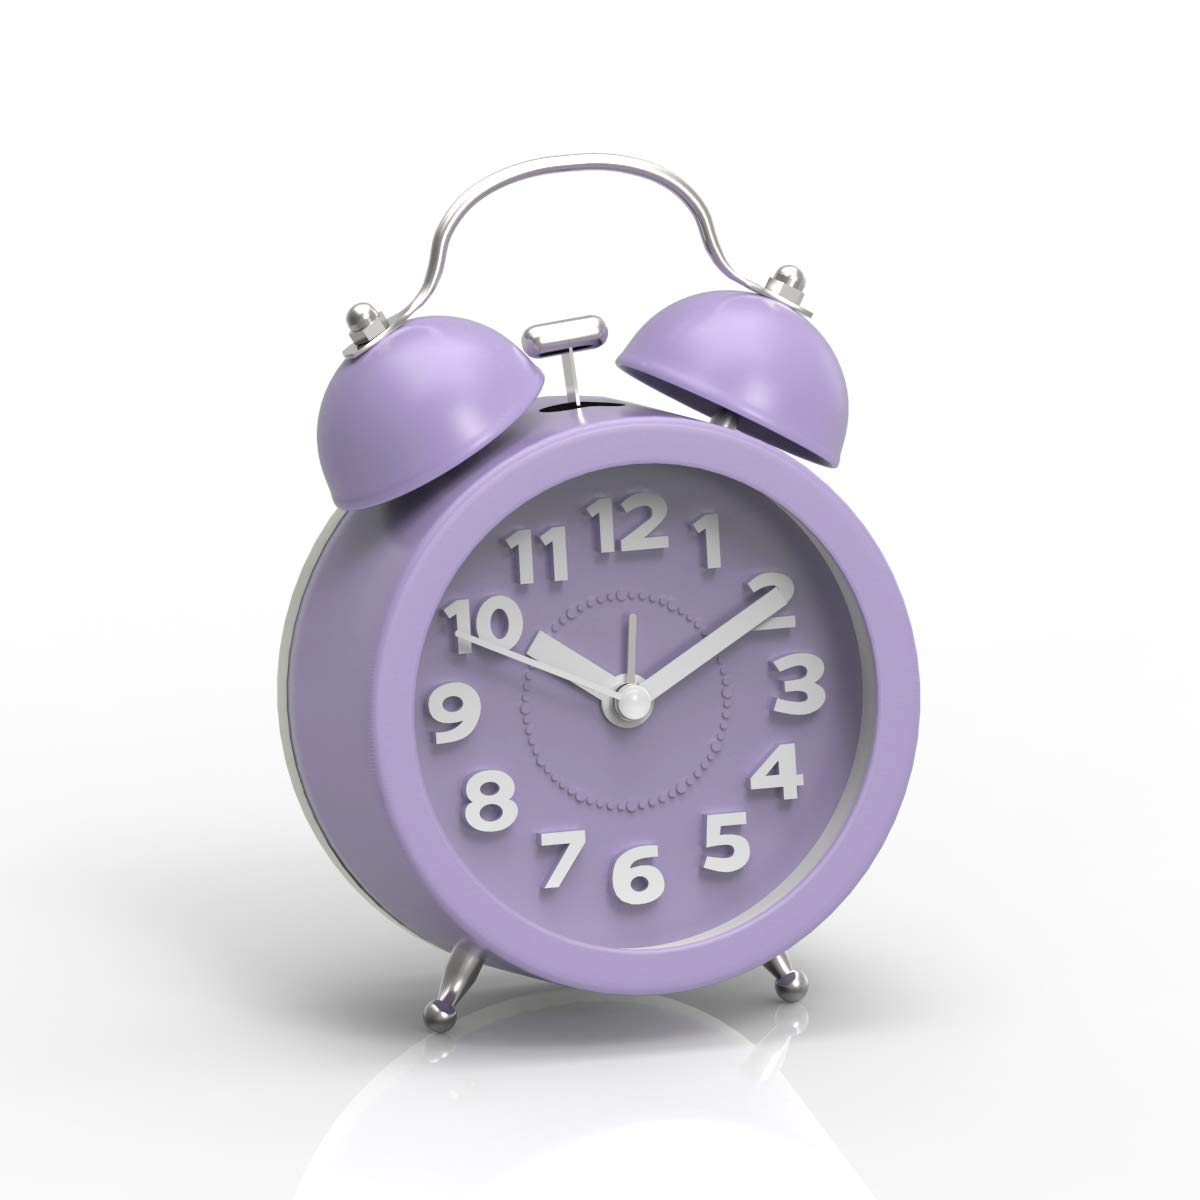 PiLife 3'' Mini Non-ticking Vintage Classic  Analog Alarm Clock with Backlight , Battery Operated Travel Clock, Loud Twin Bell Alarm Clock for Kids( 3D Purple)